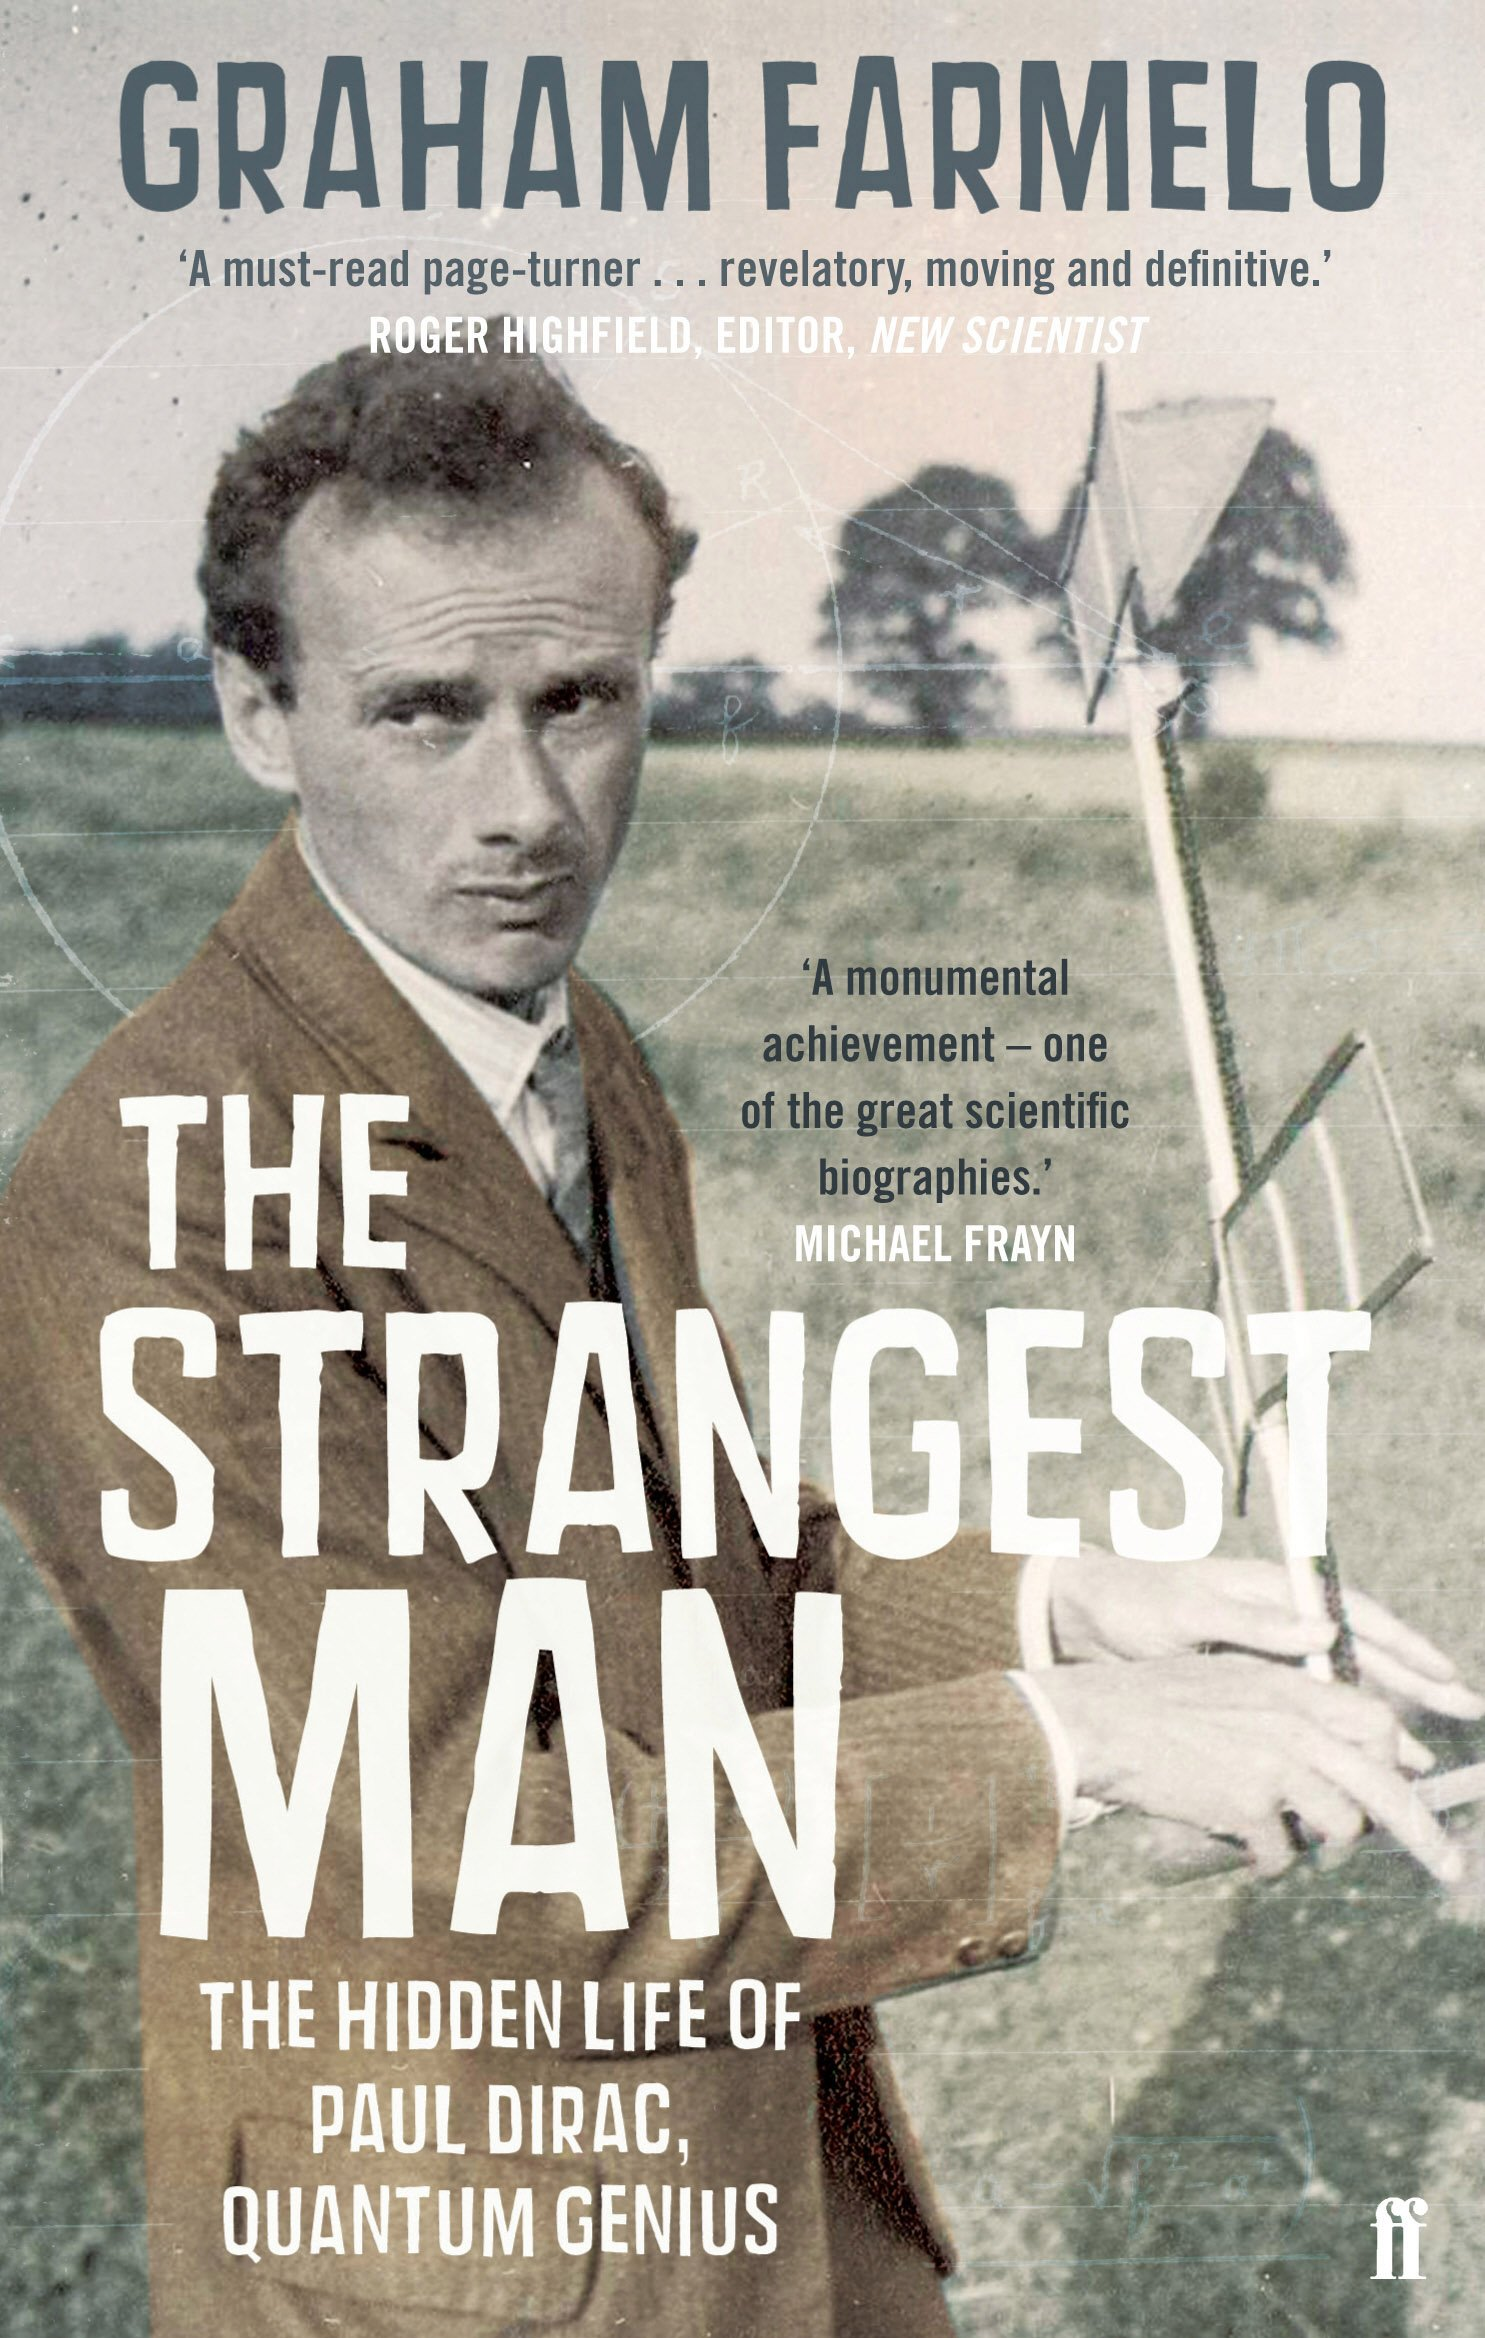 The Strangest Man: The Hidden Life of Paul Dirac, Quantum Genius